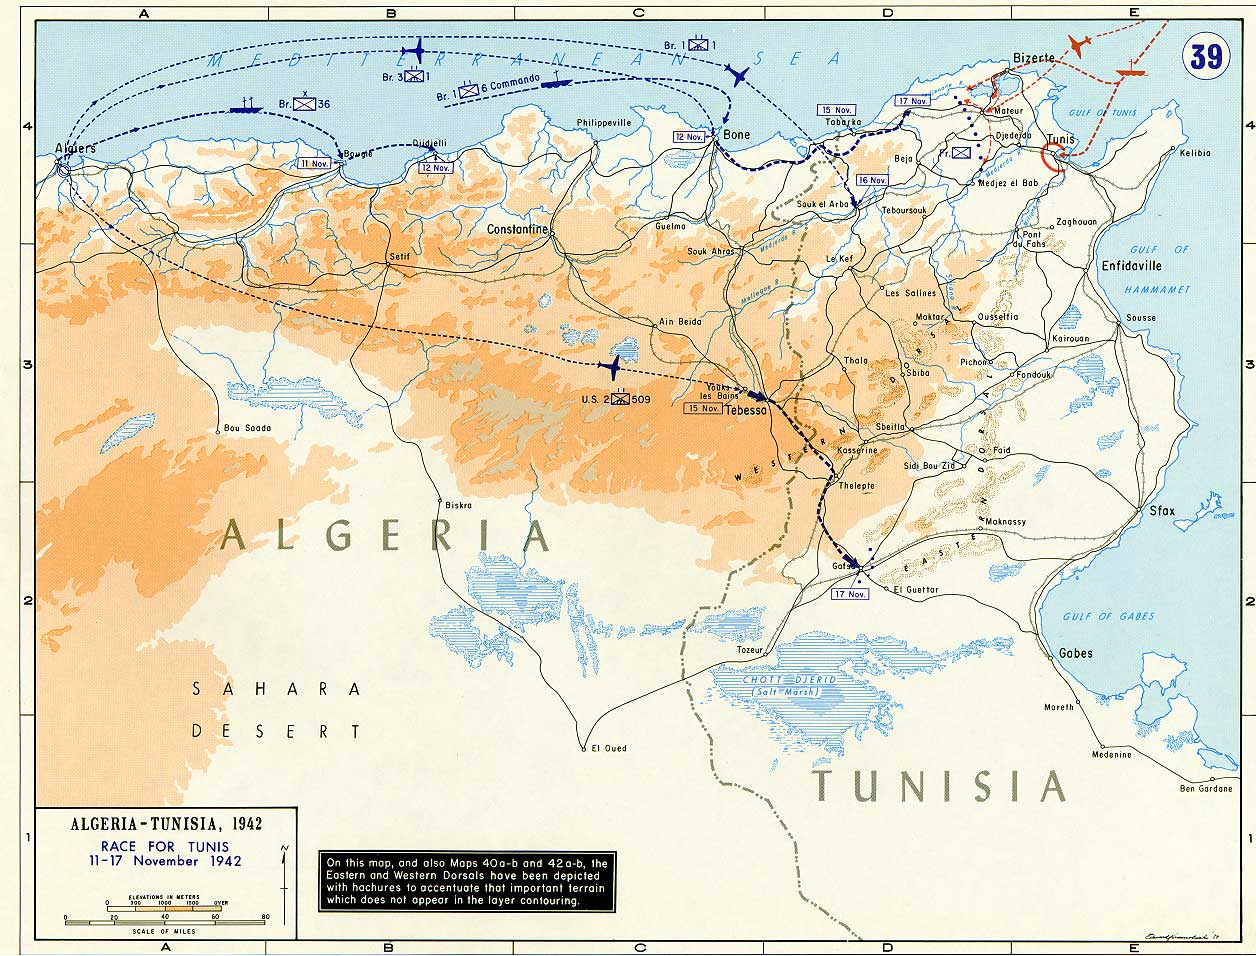 Map of Algeria and Tunisia (November 1942)